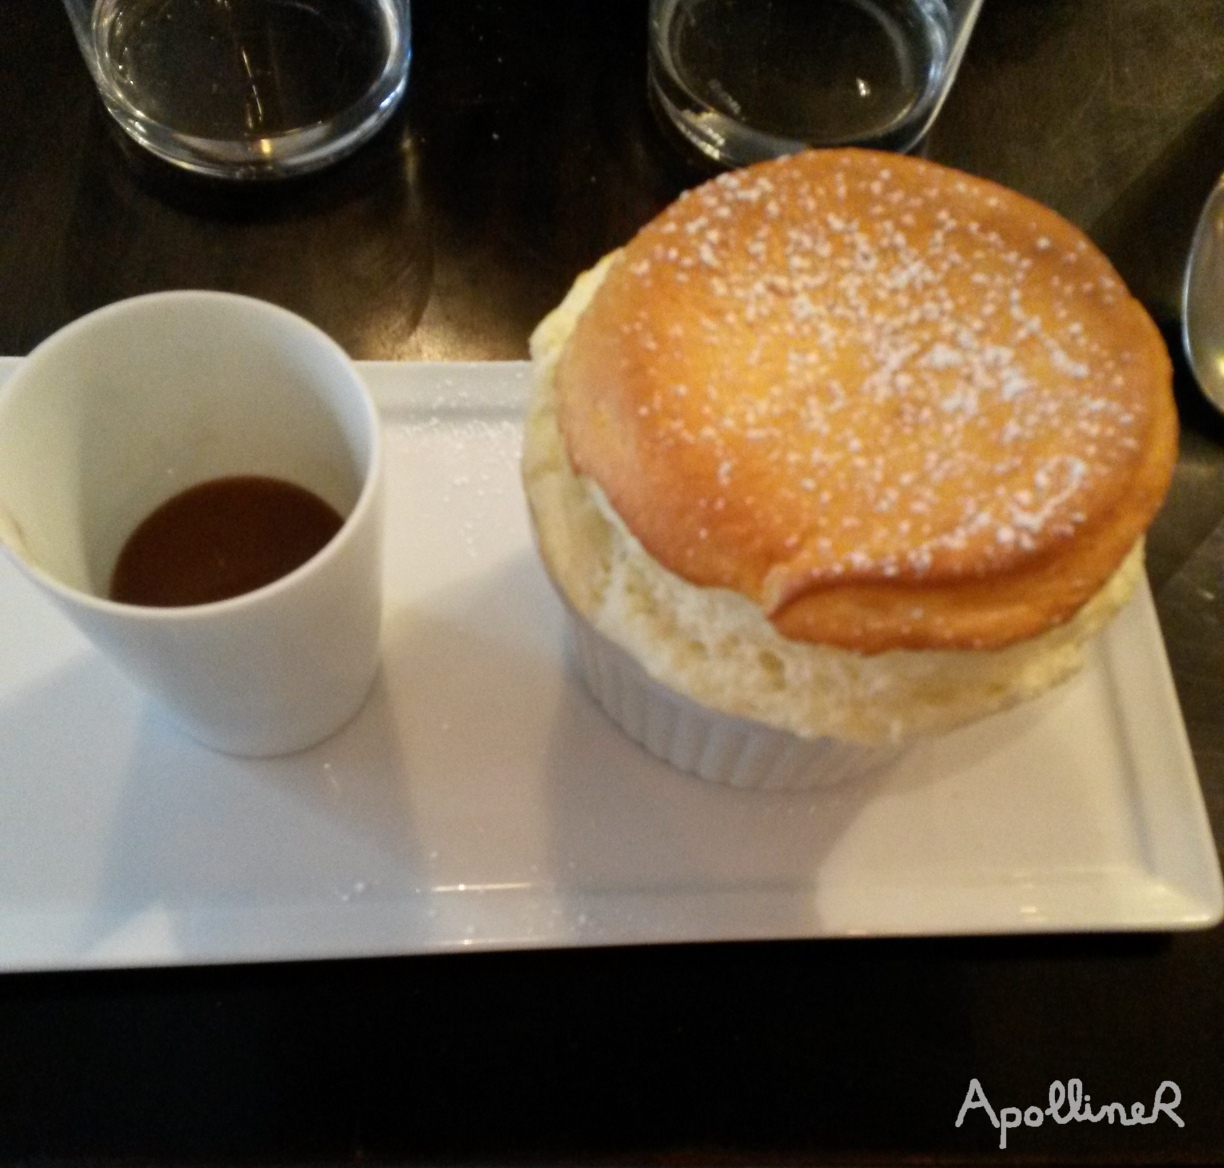 Grand Marnier Soufflé with caramel